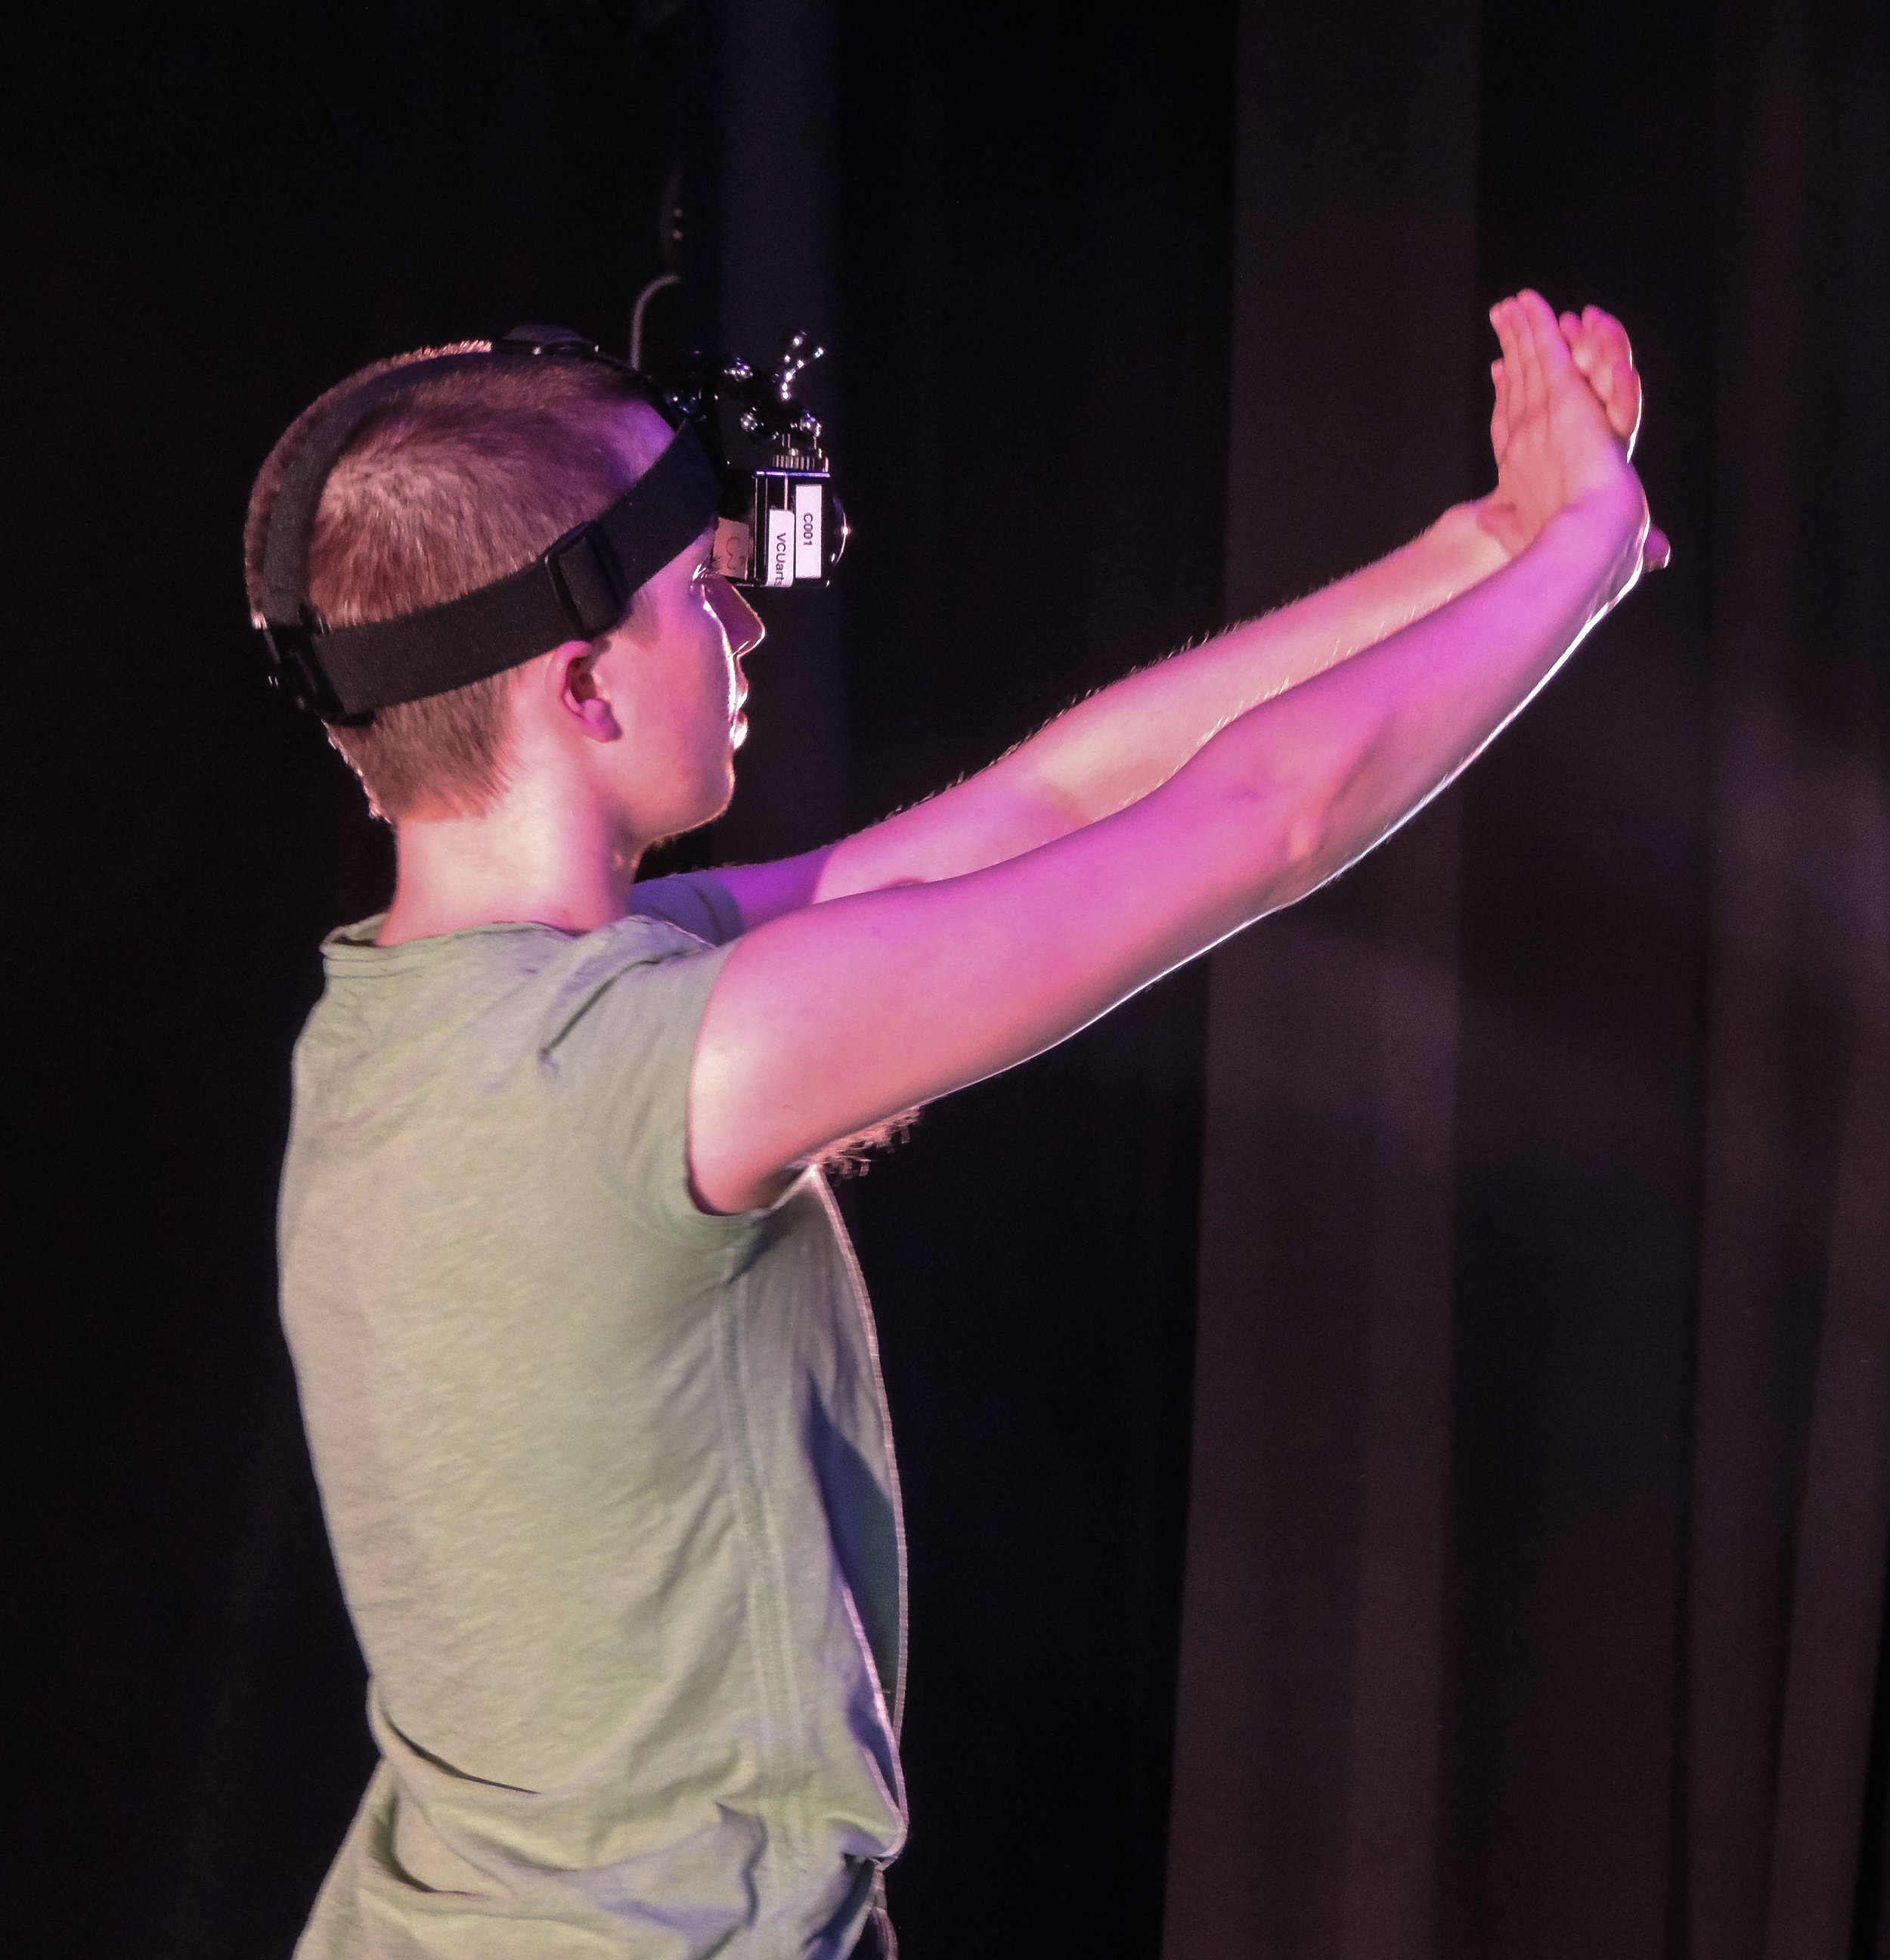 Dancer Len Foyle performs choreography while wearing a 360 degree camera in order to film one of six embodiment experiences for Familial Movers / Foreign Stories.